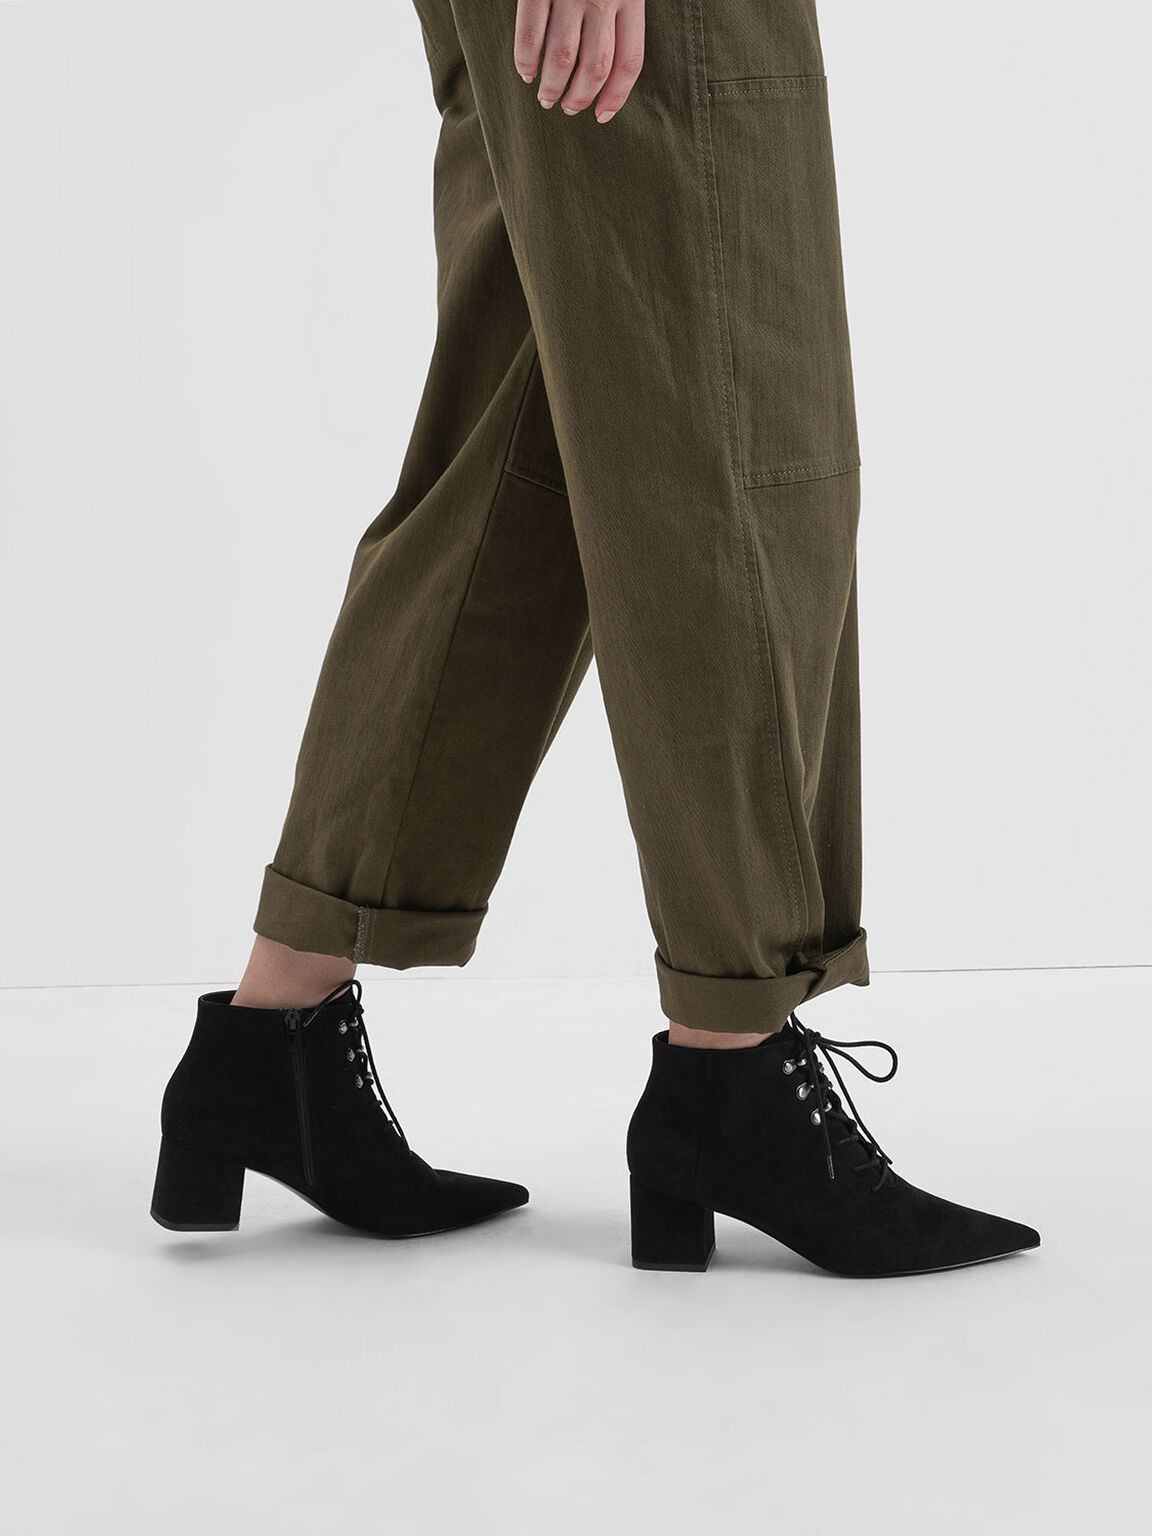 Textured Lace-Up Ankle Boots, Black, hi-res